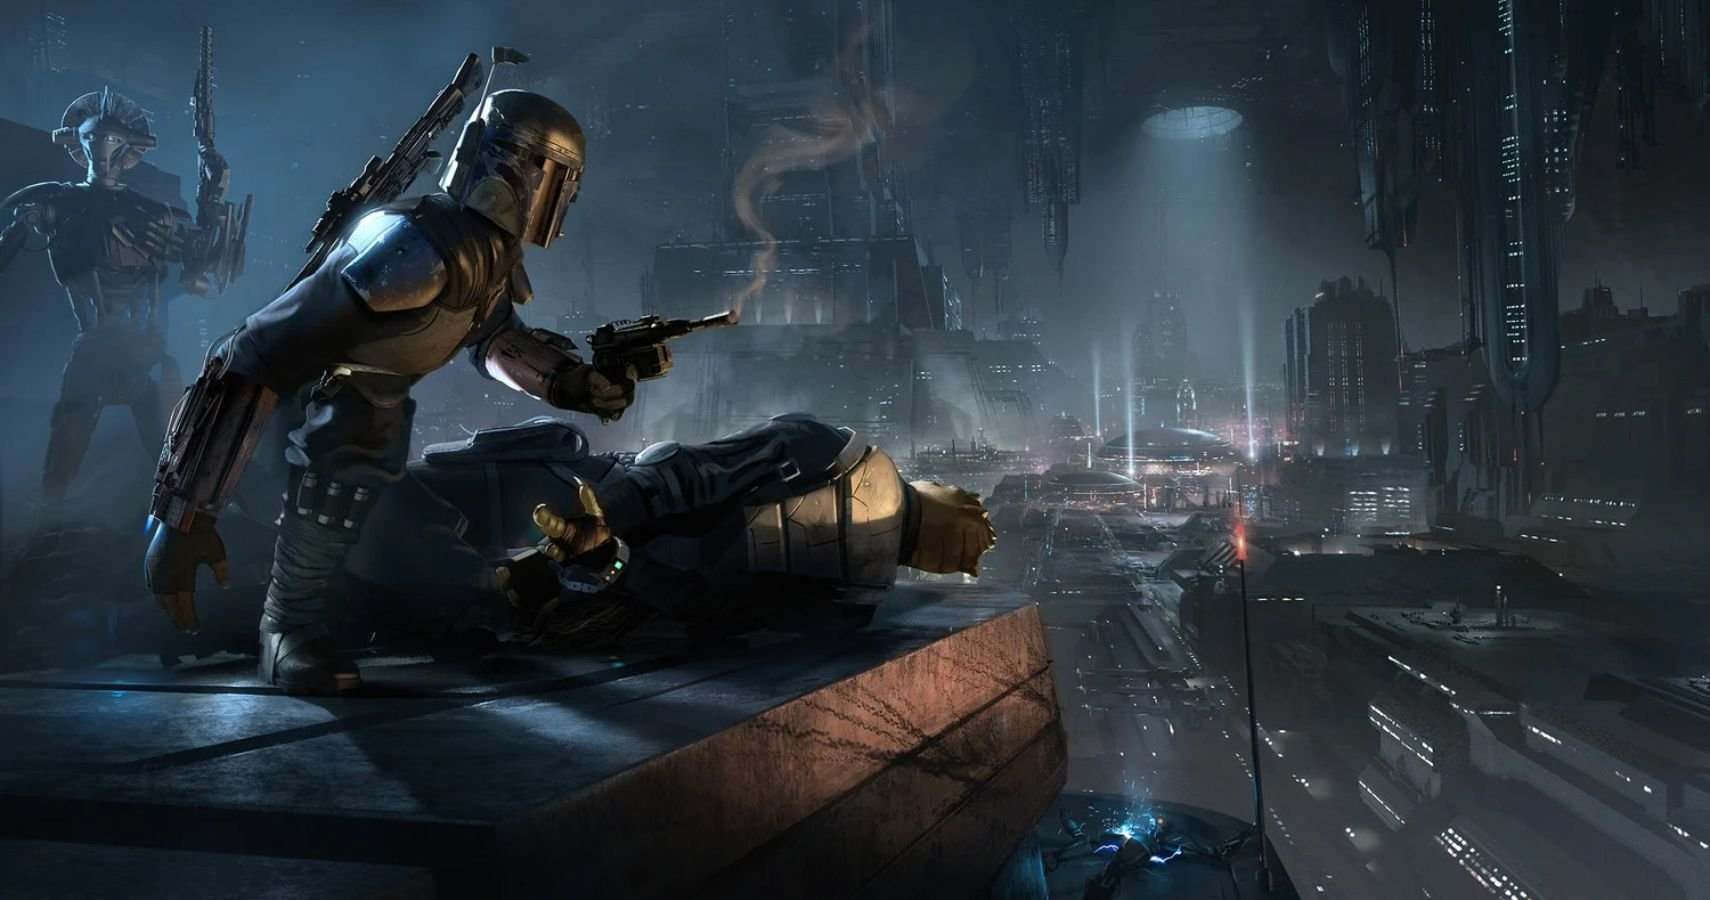 """Ubisoft CEO Says The Open-World Star Wars Game Will Be """"Groundbreaking"""""""